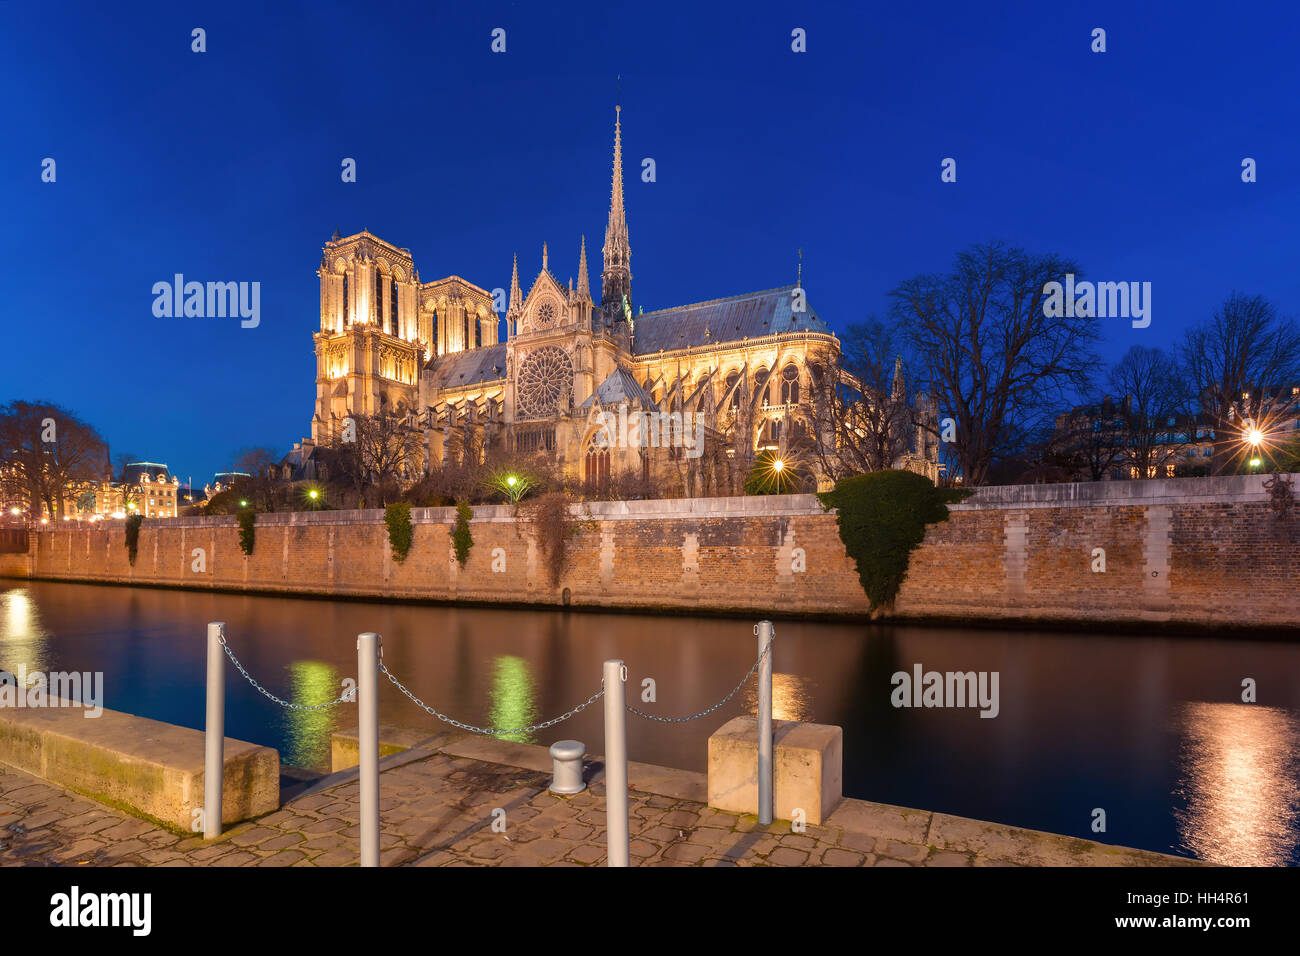 Cathédrale Notre Dame de Paris la nuit, France Photo Stock